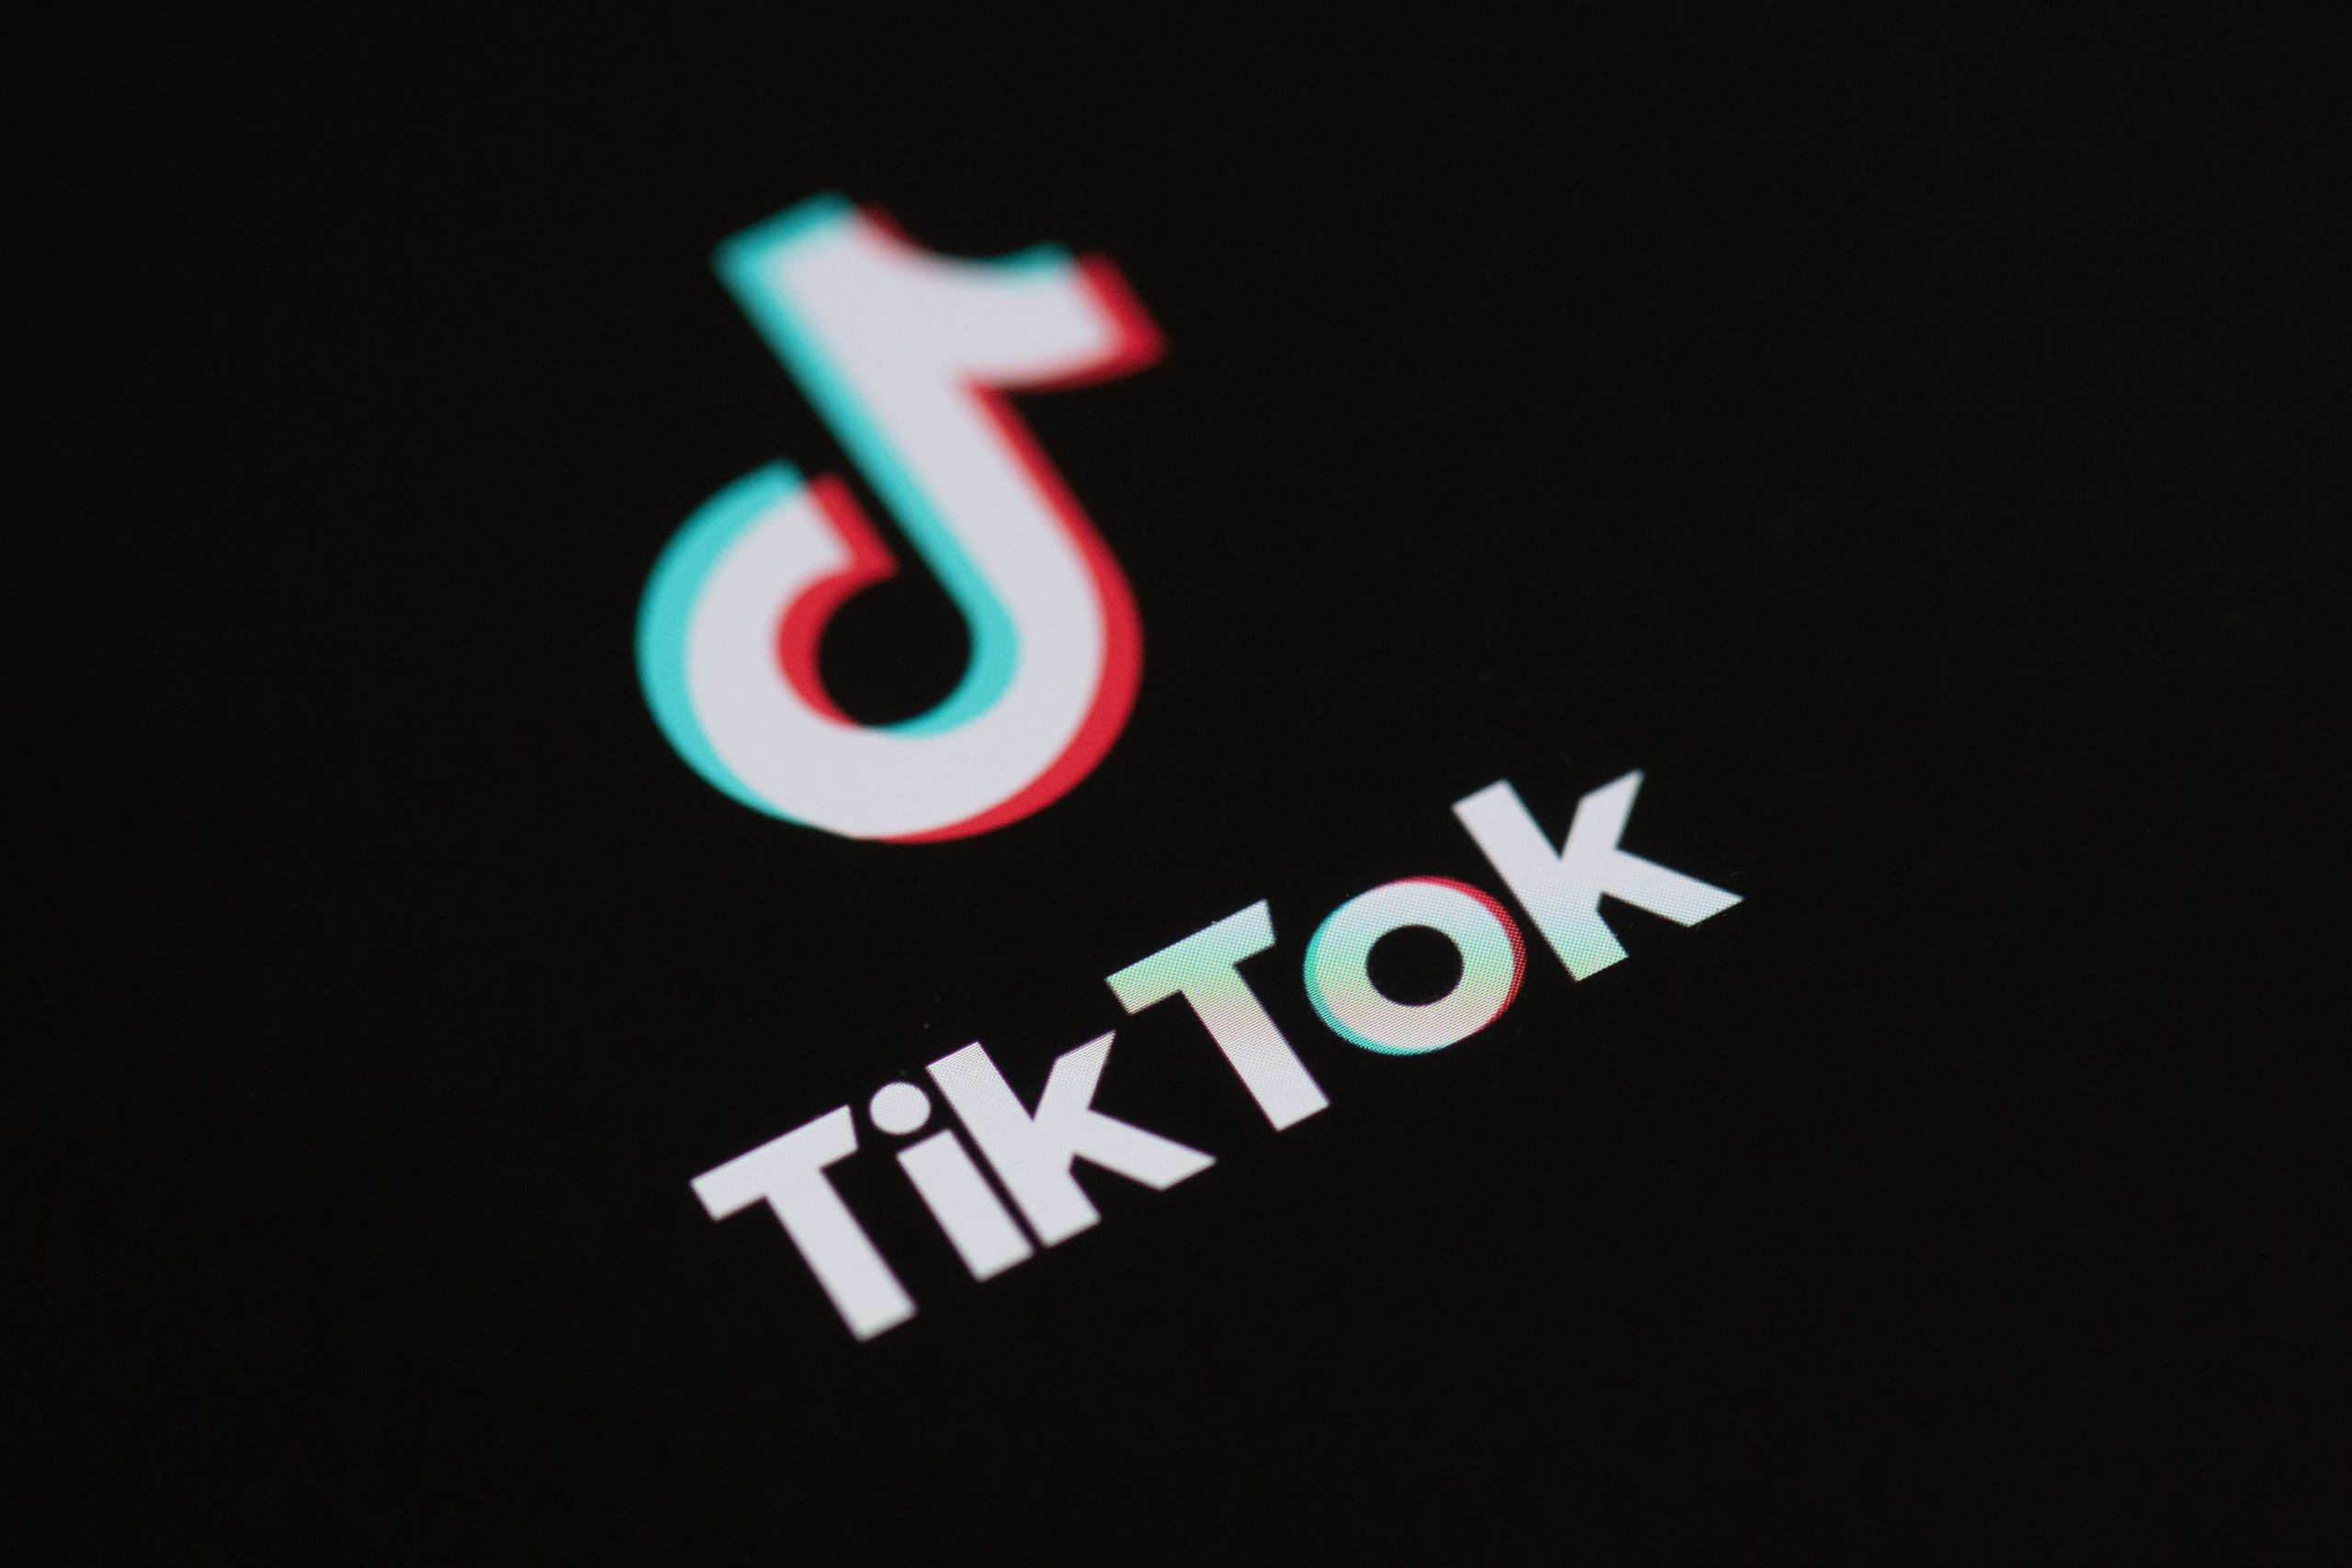 TikTok is not safe for your kids